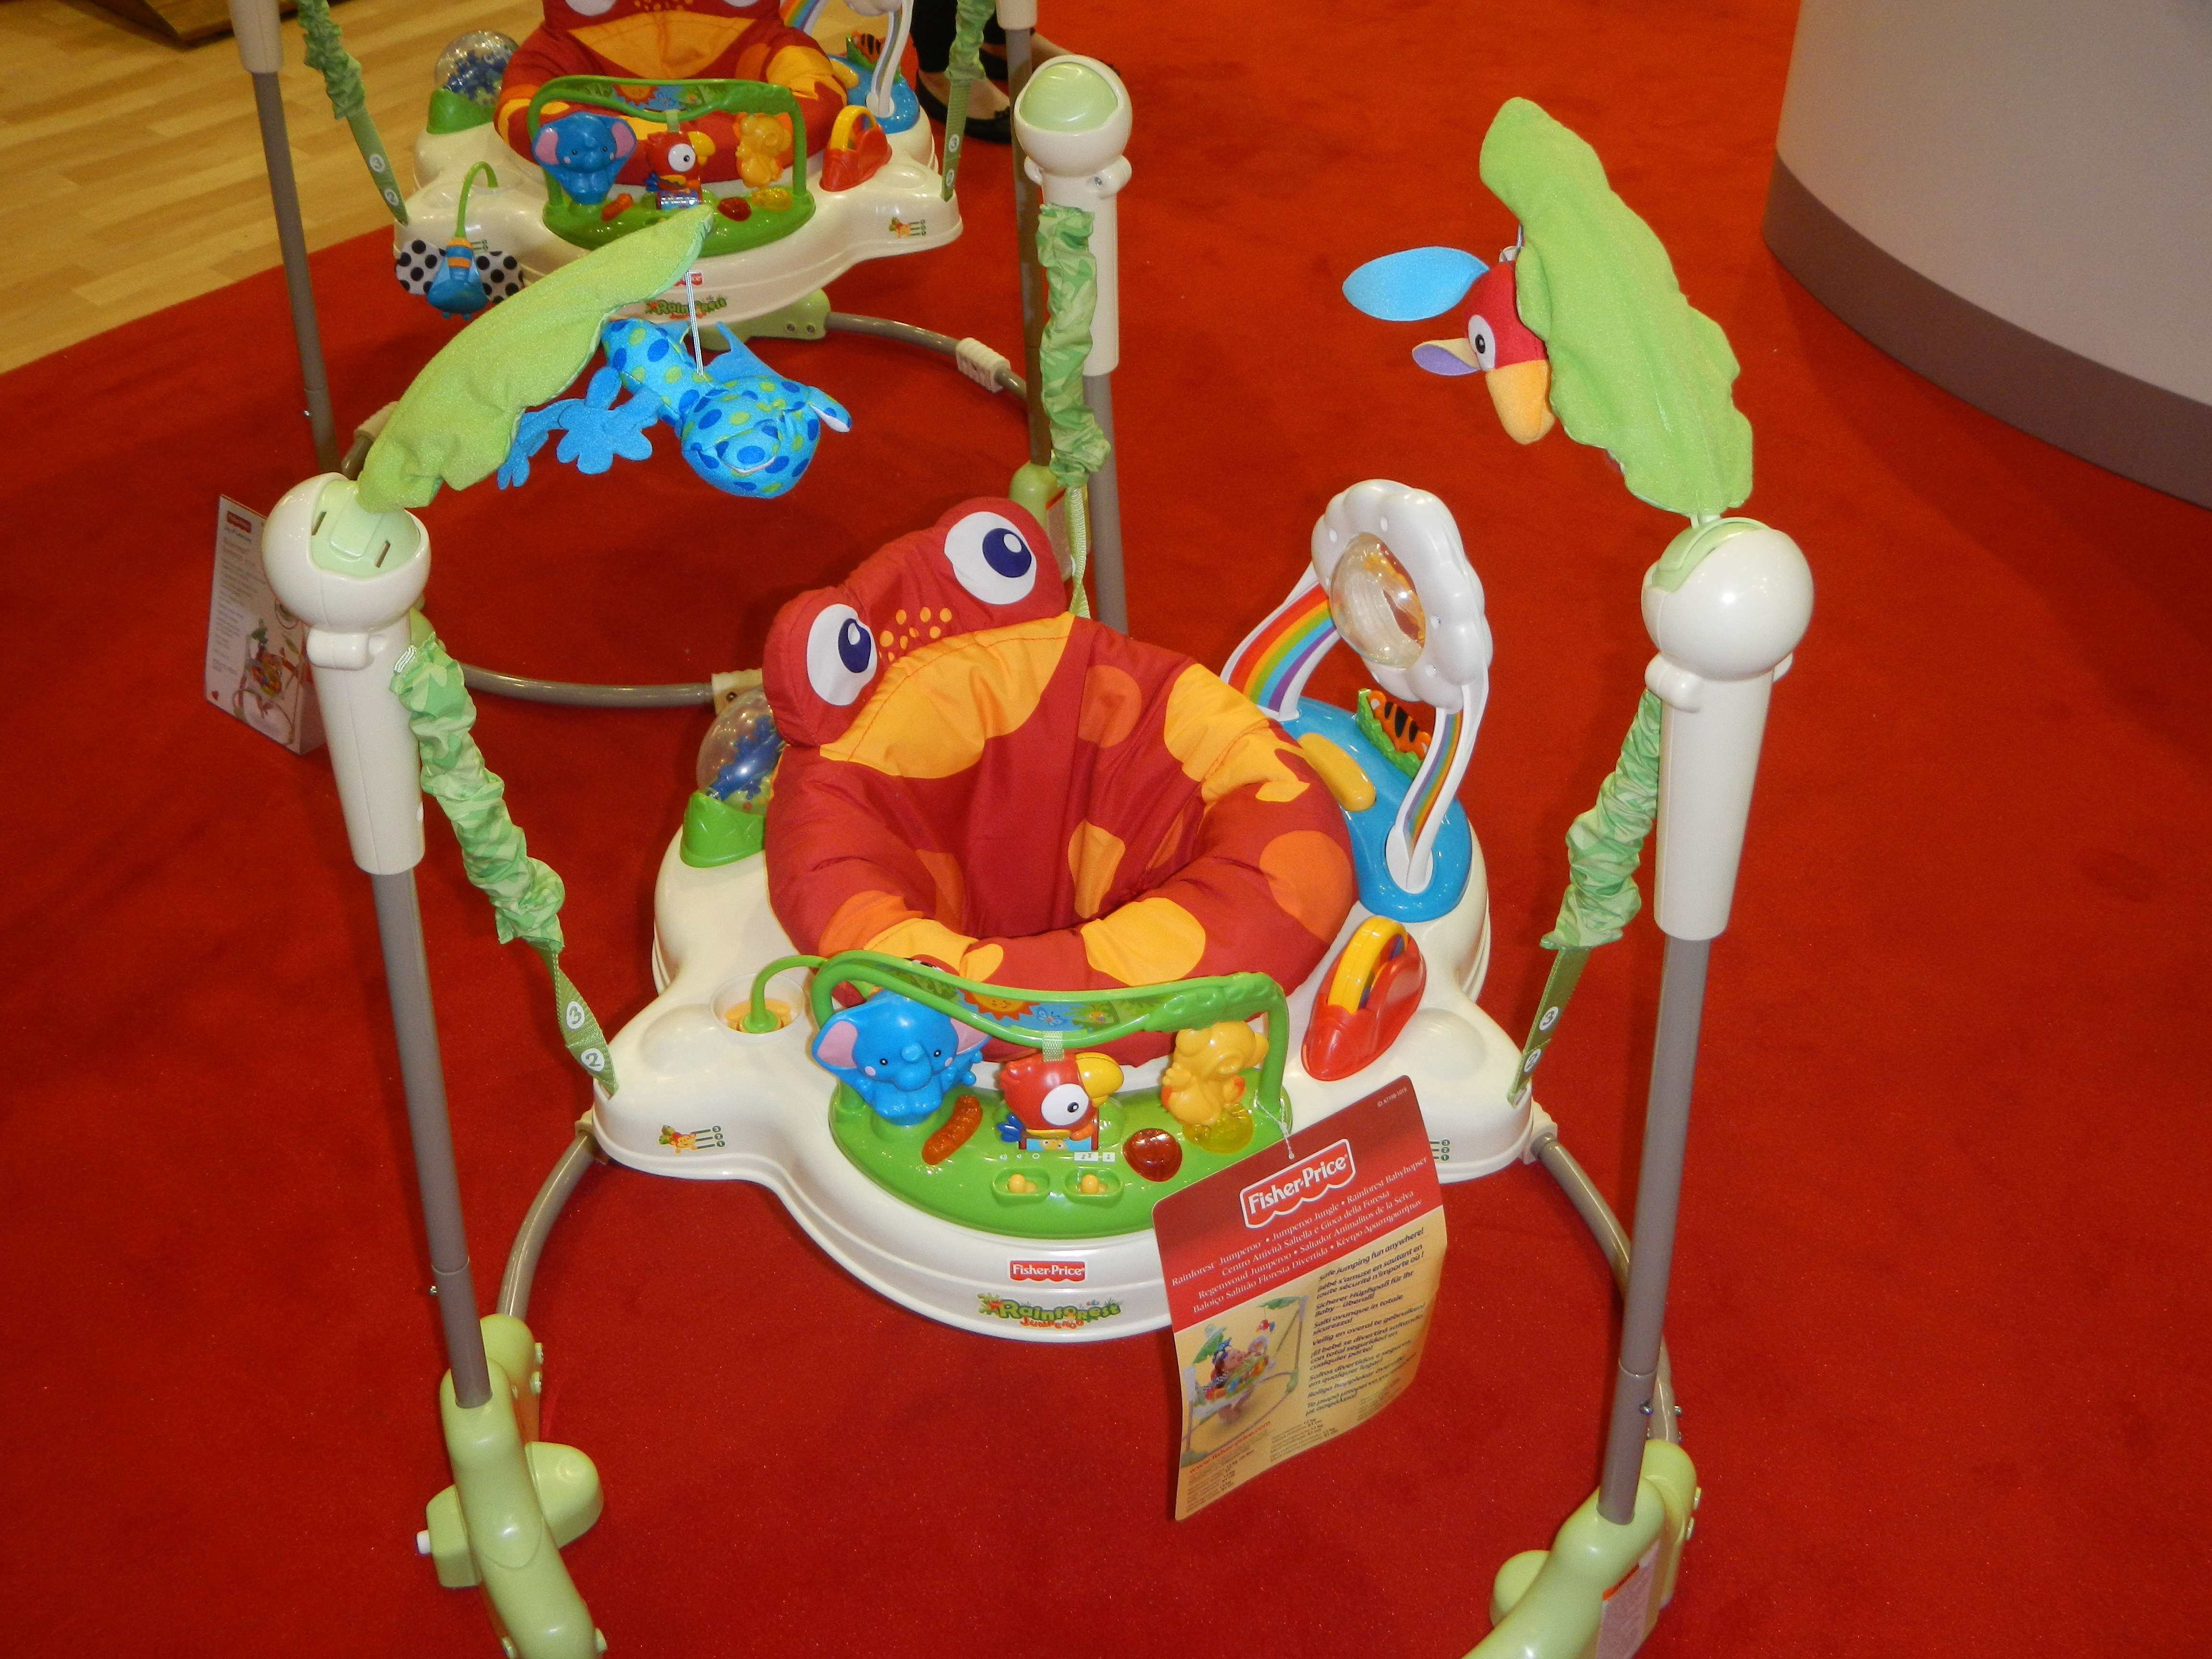 Babyzcoolit Mattel Fisher Price At The Baby Show 2012